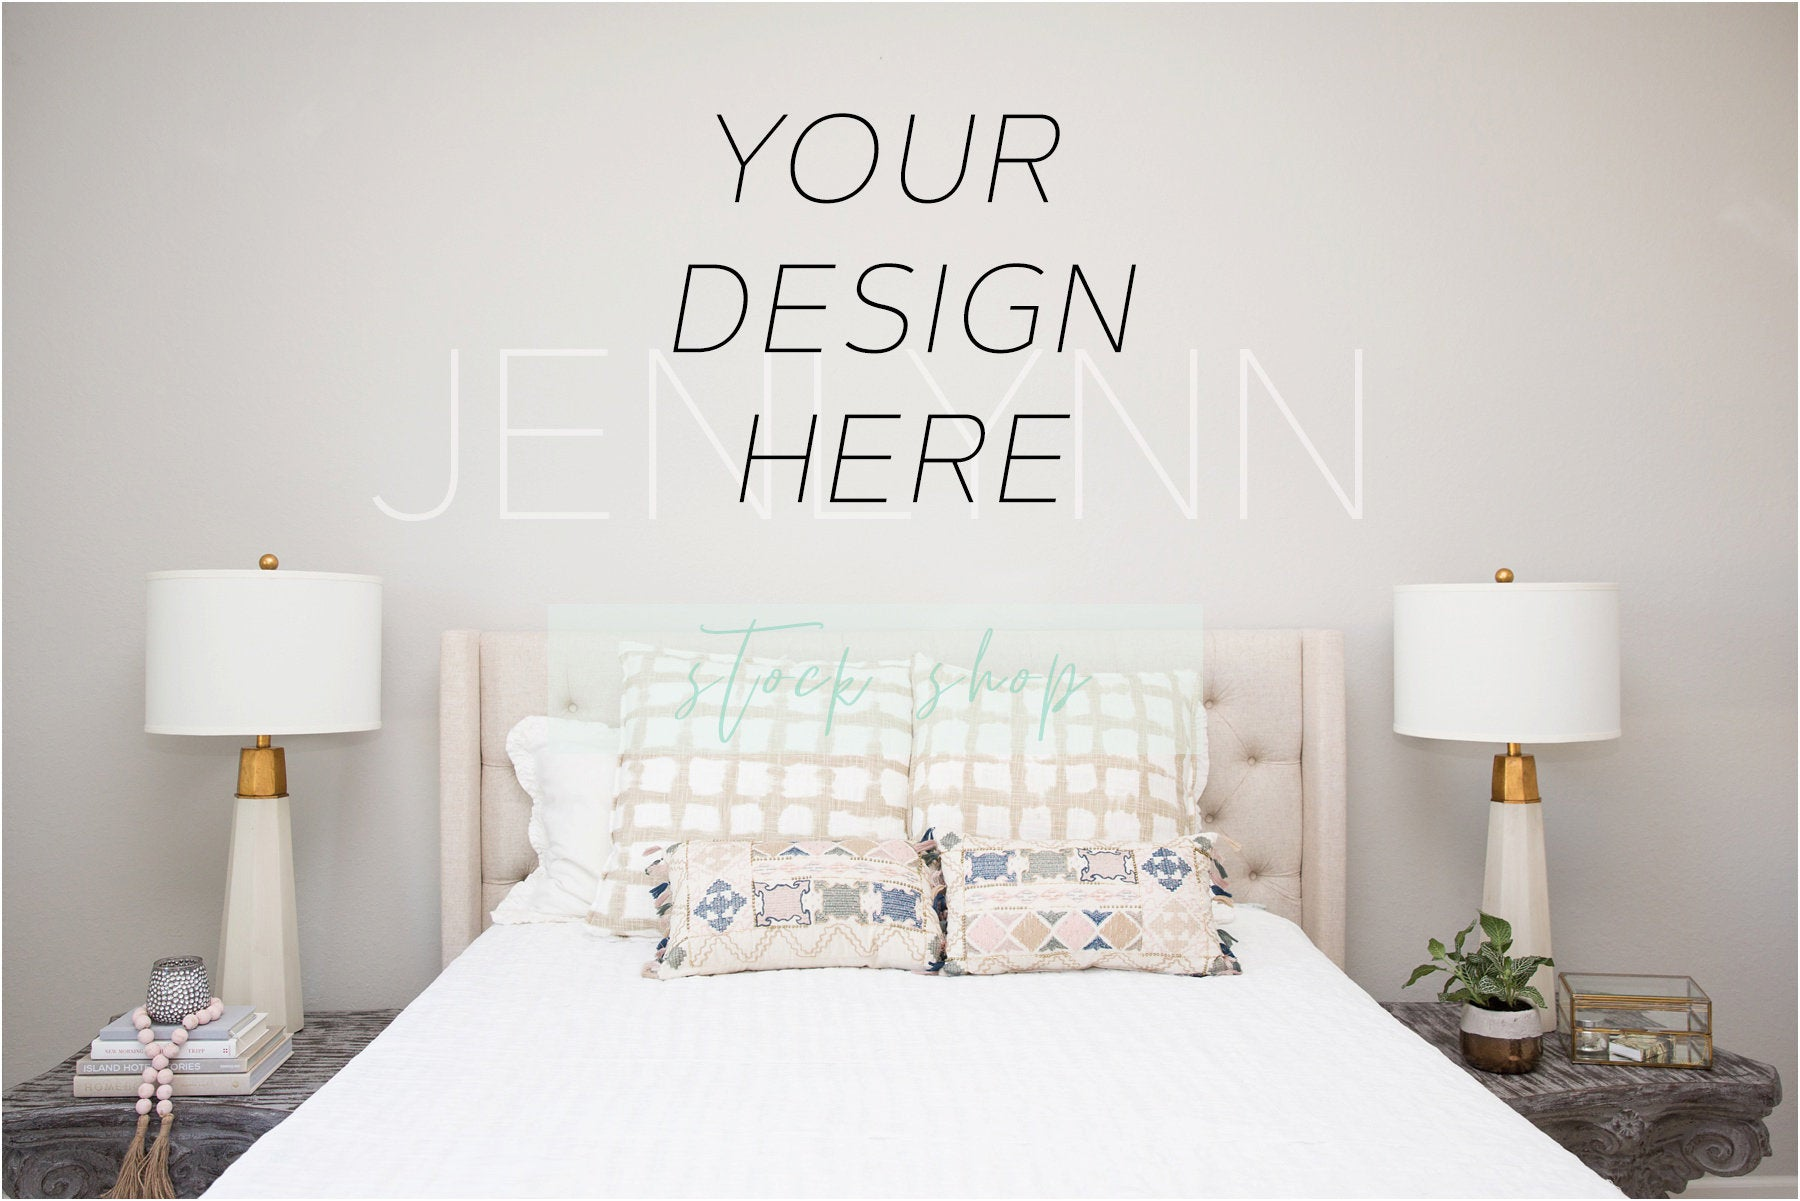 Bedroom Wall Mockup #4